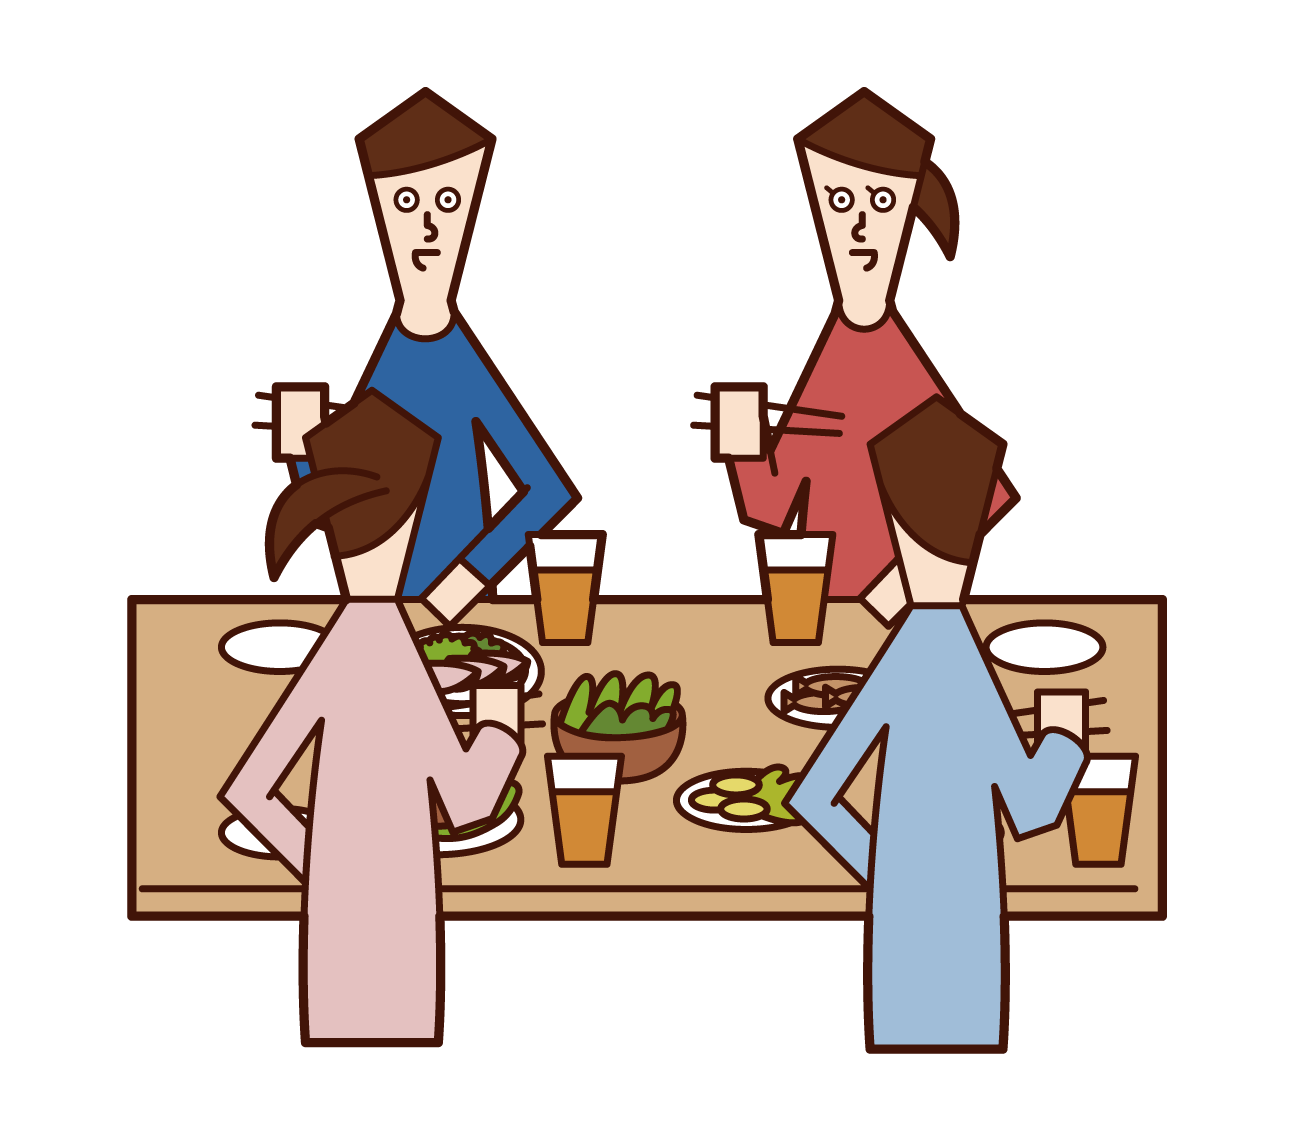 Illustrations of people (men and women) enjoying lunch